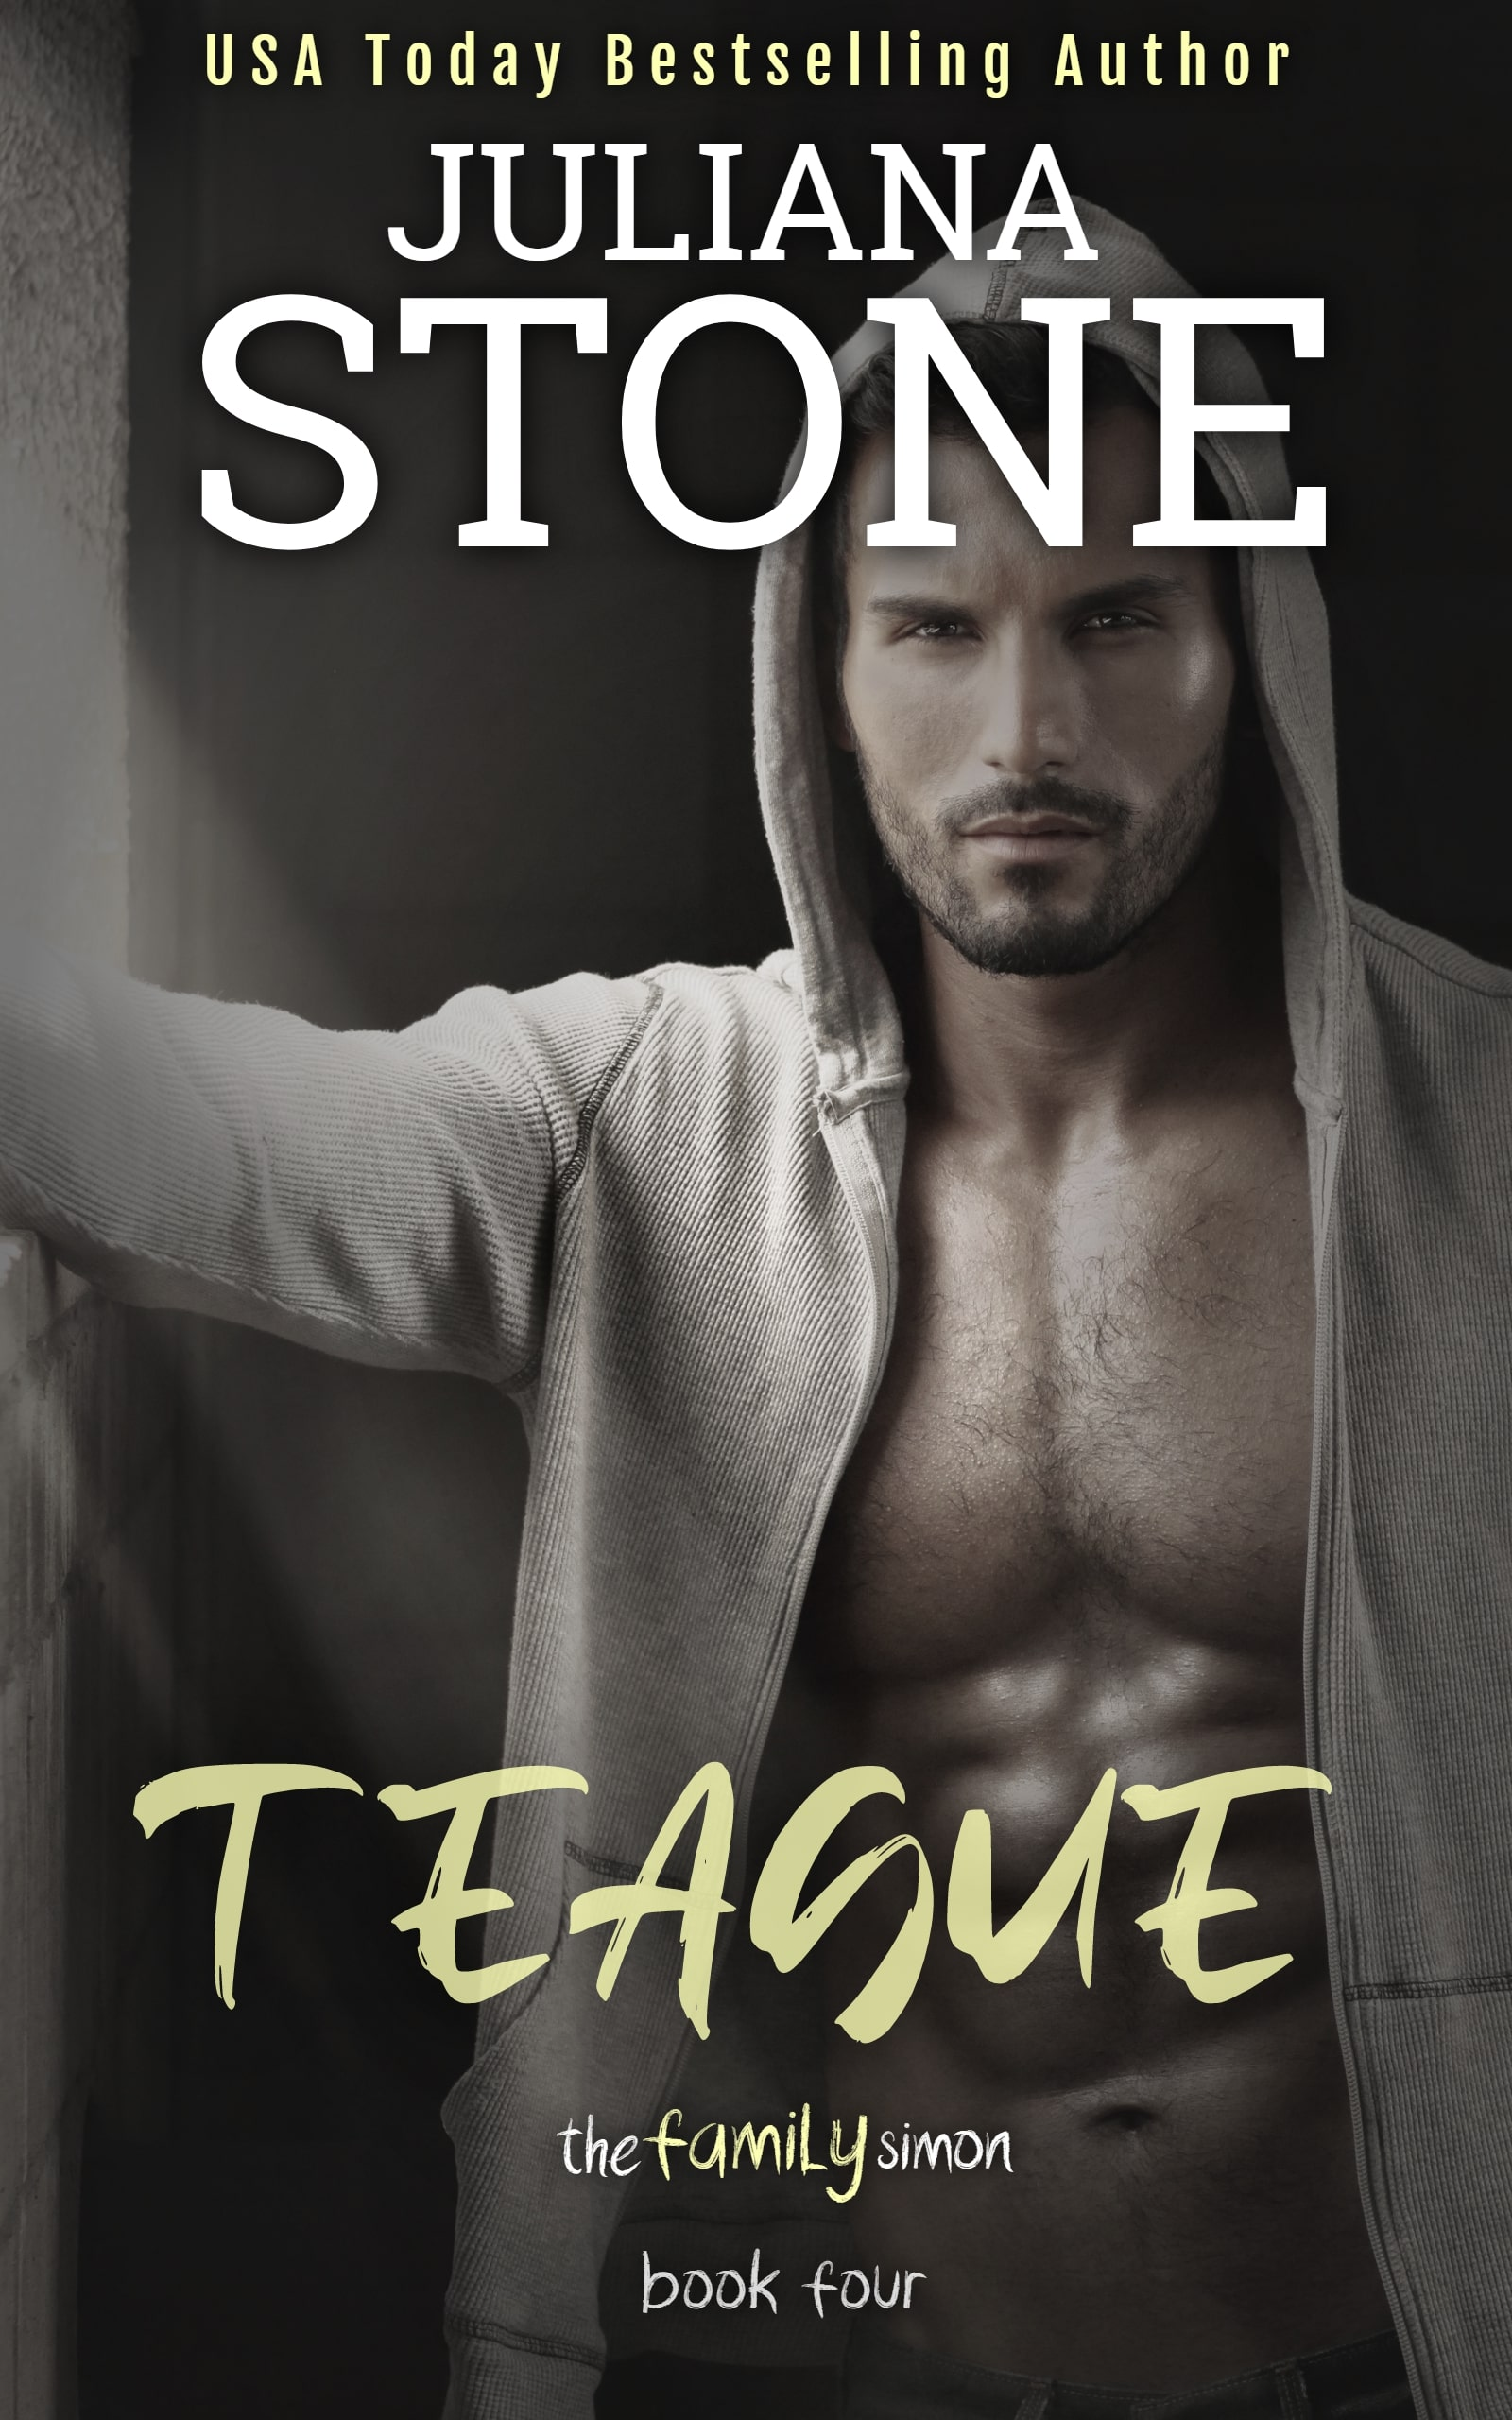 Teague by Juliana Stone